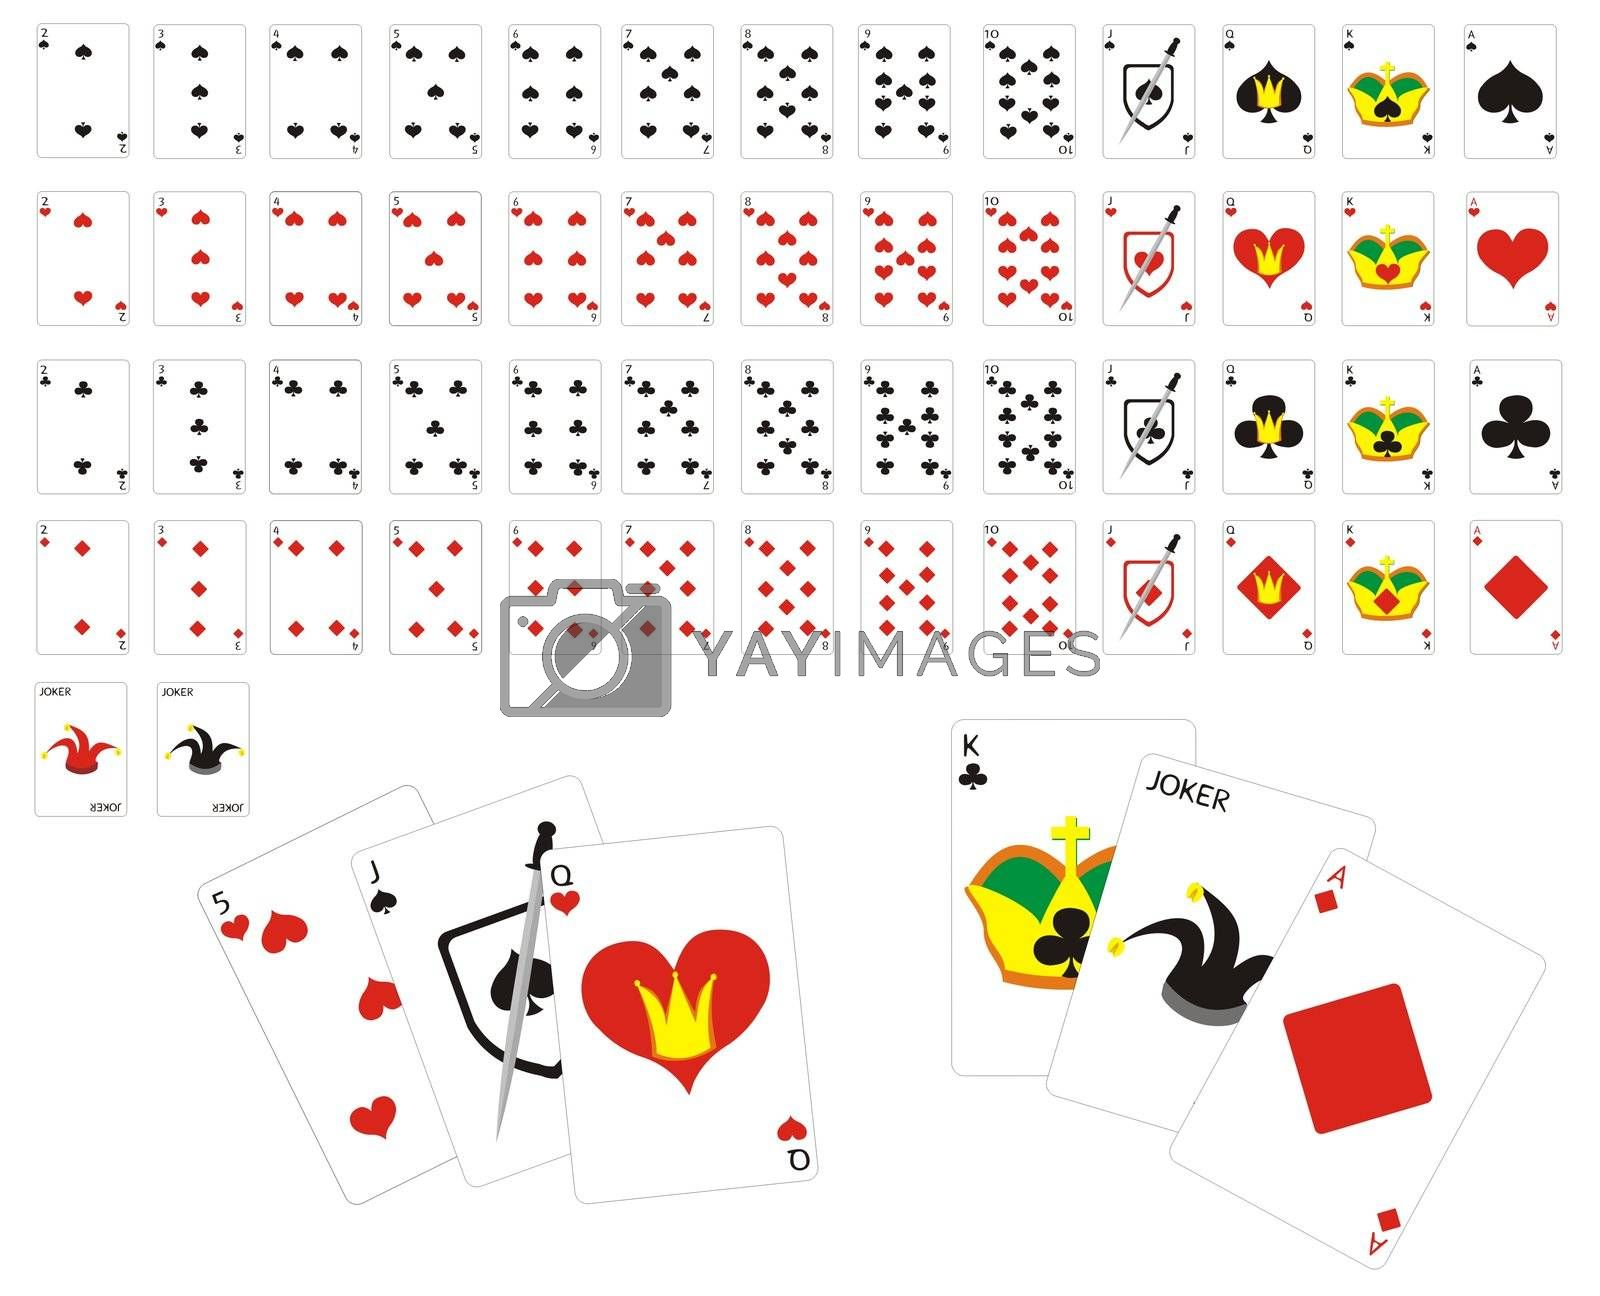 illustration of full deck of simple playing cards